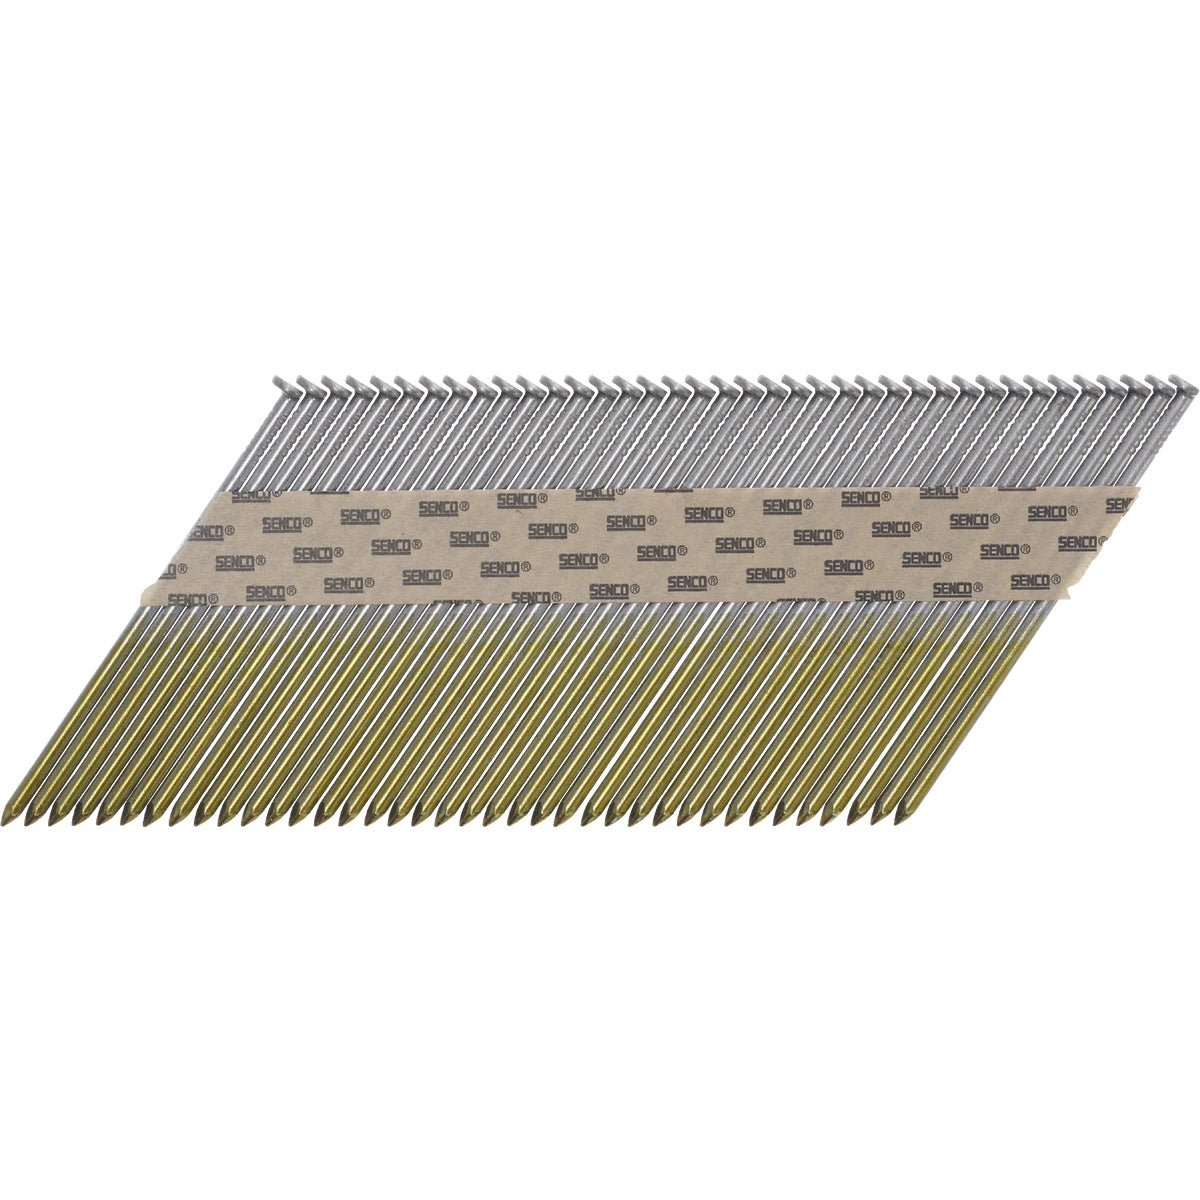 "3-1/2"" FRAMING NAIL - KC29APBX by Senco Brands"